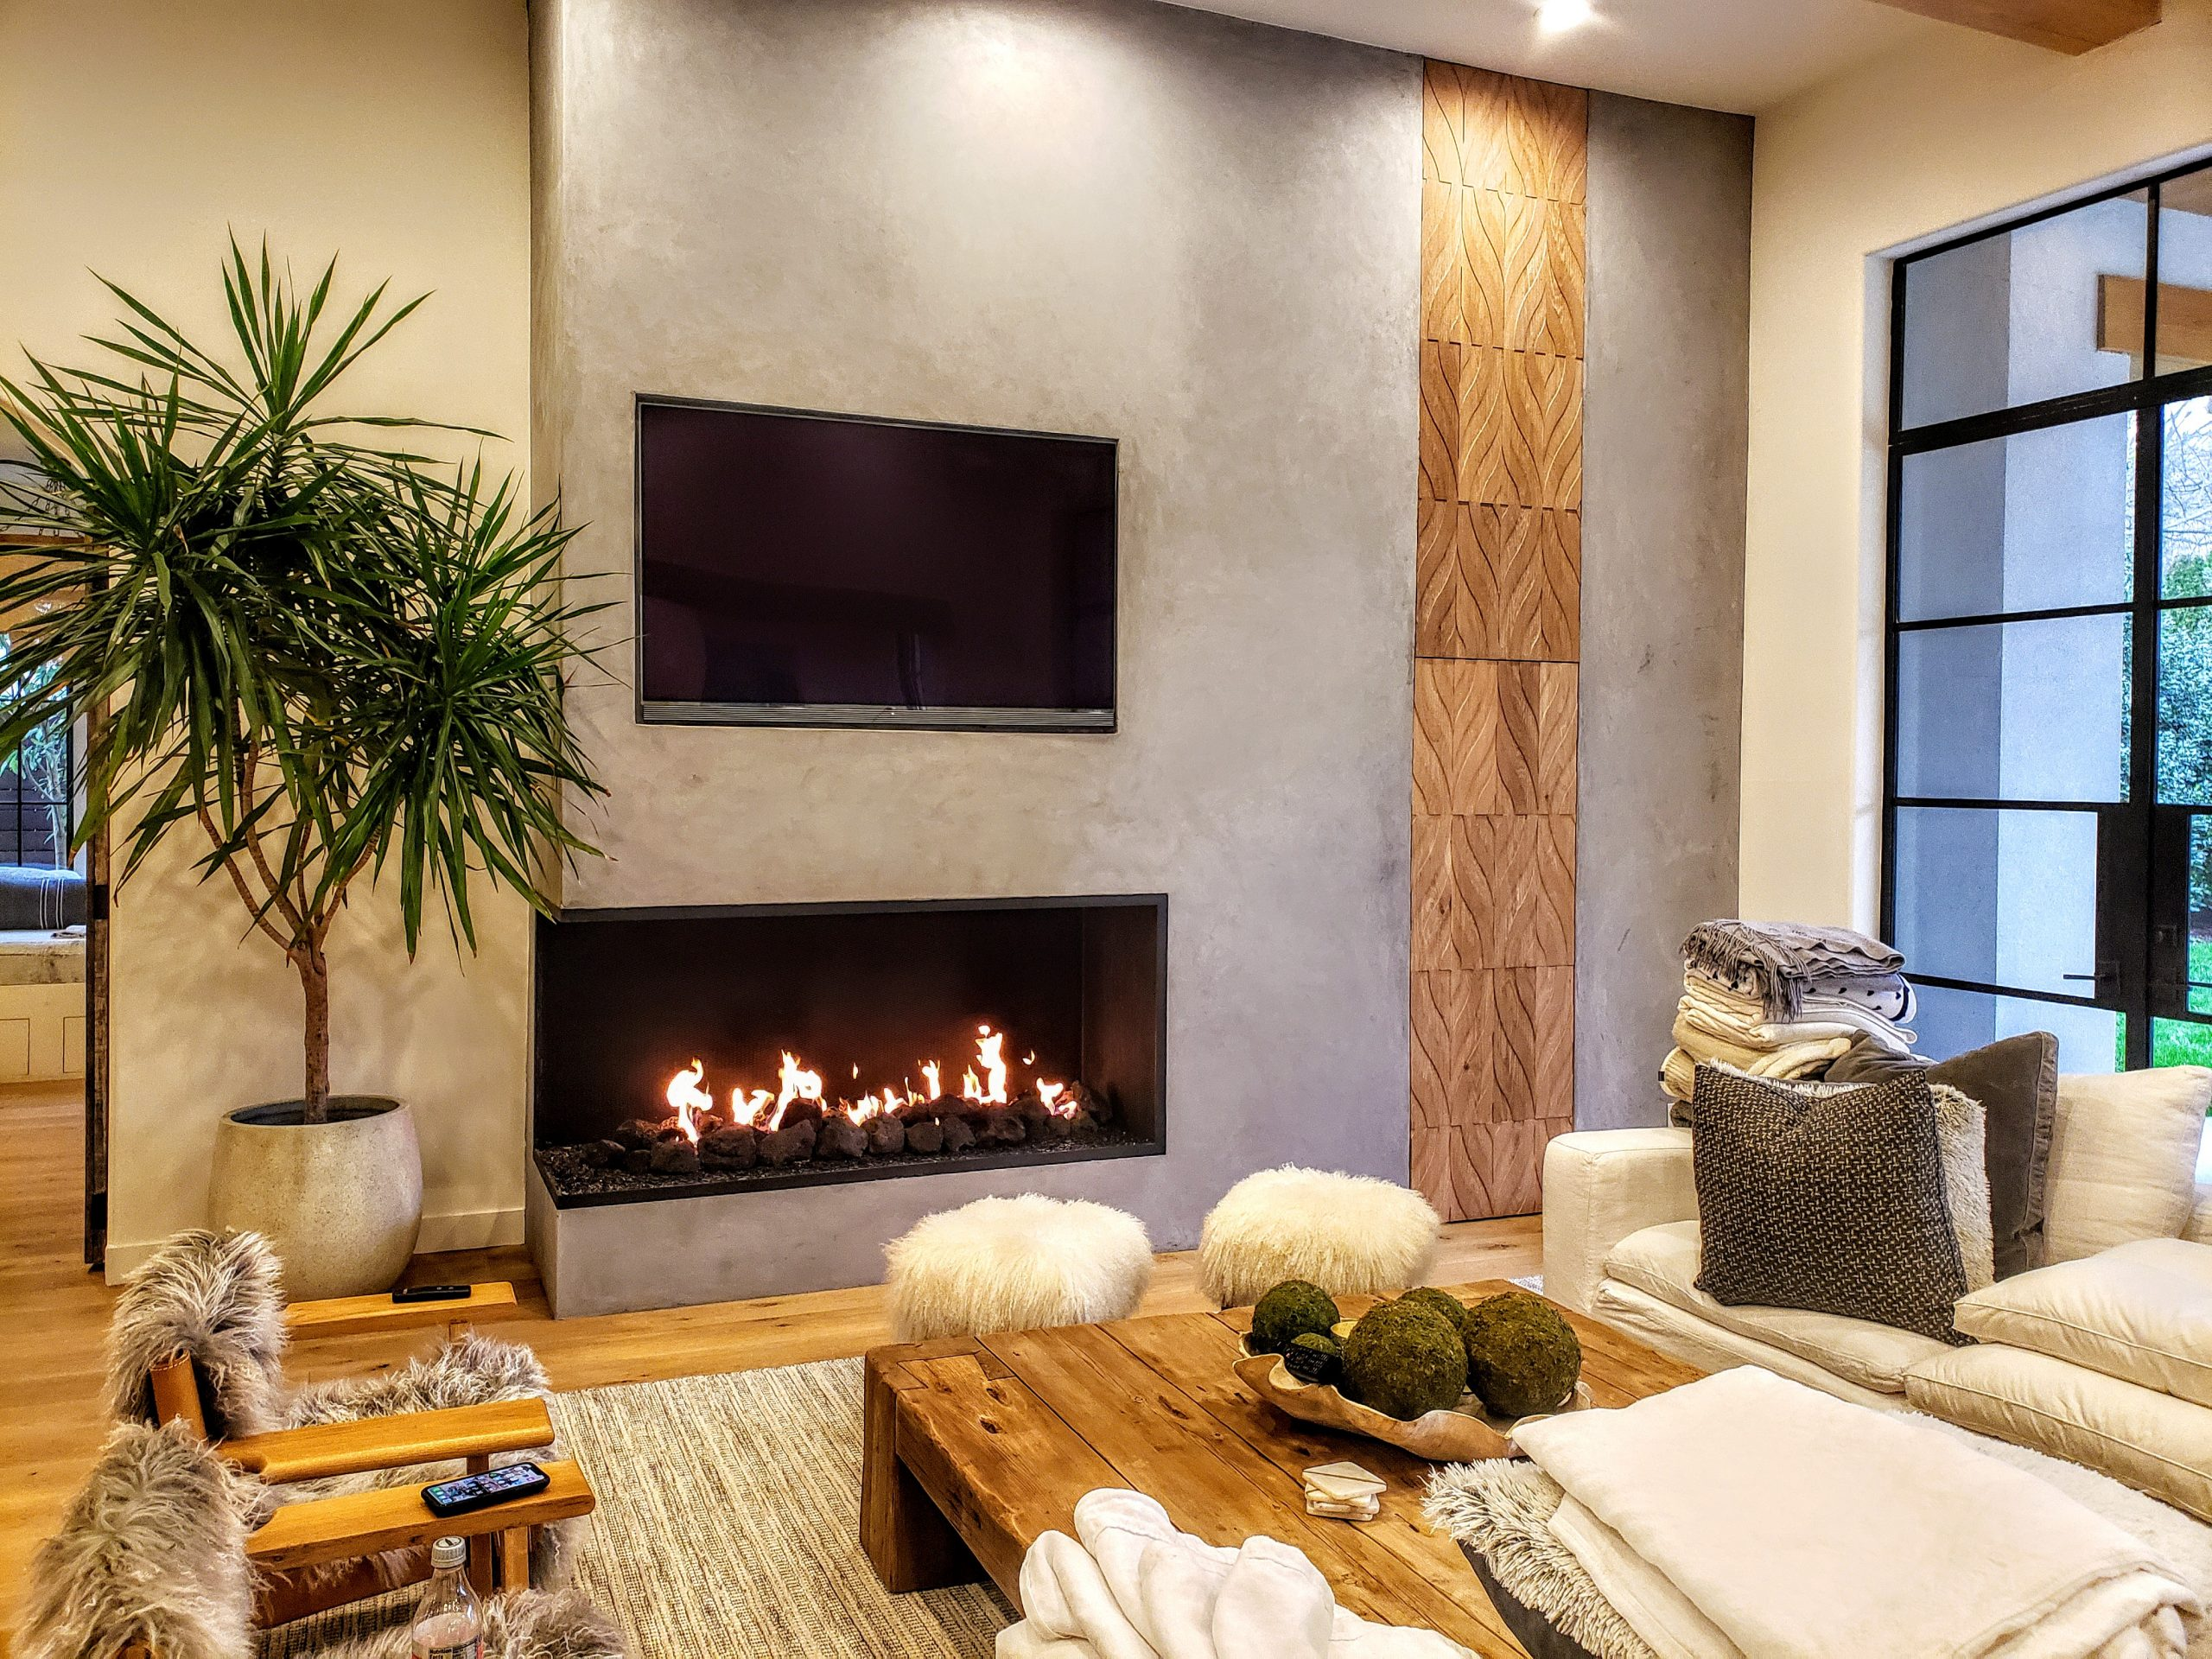 Acucraft Custom Linear Open Gas Fireplace with Left Viewing Area Glass Media & XL Lava Rocks (2)